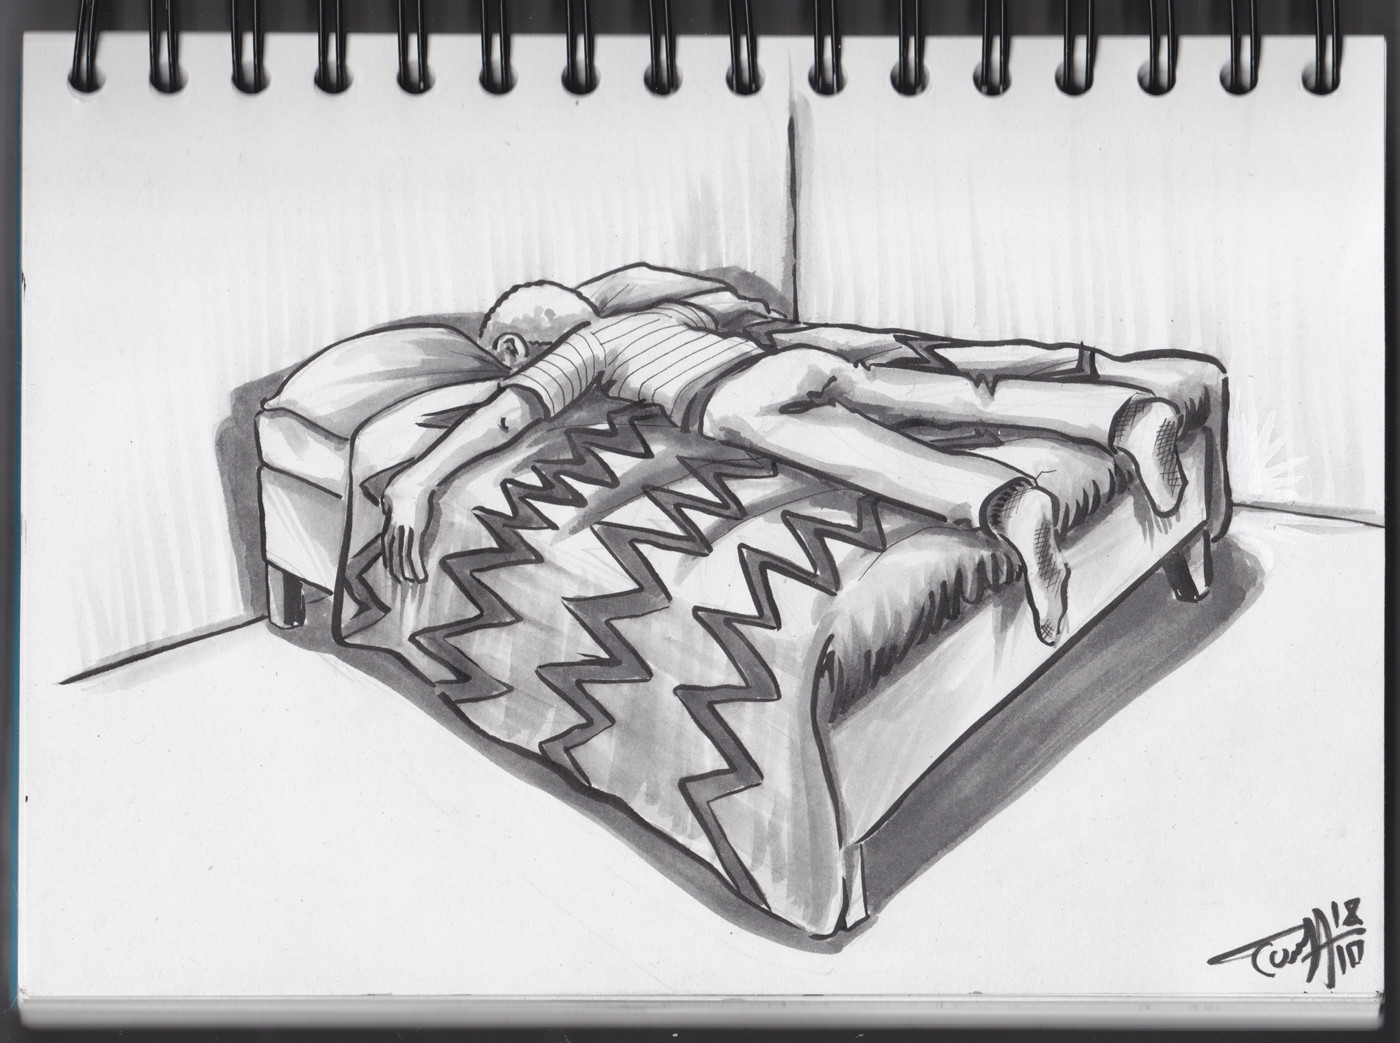 7.Exhausted